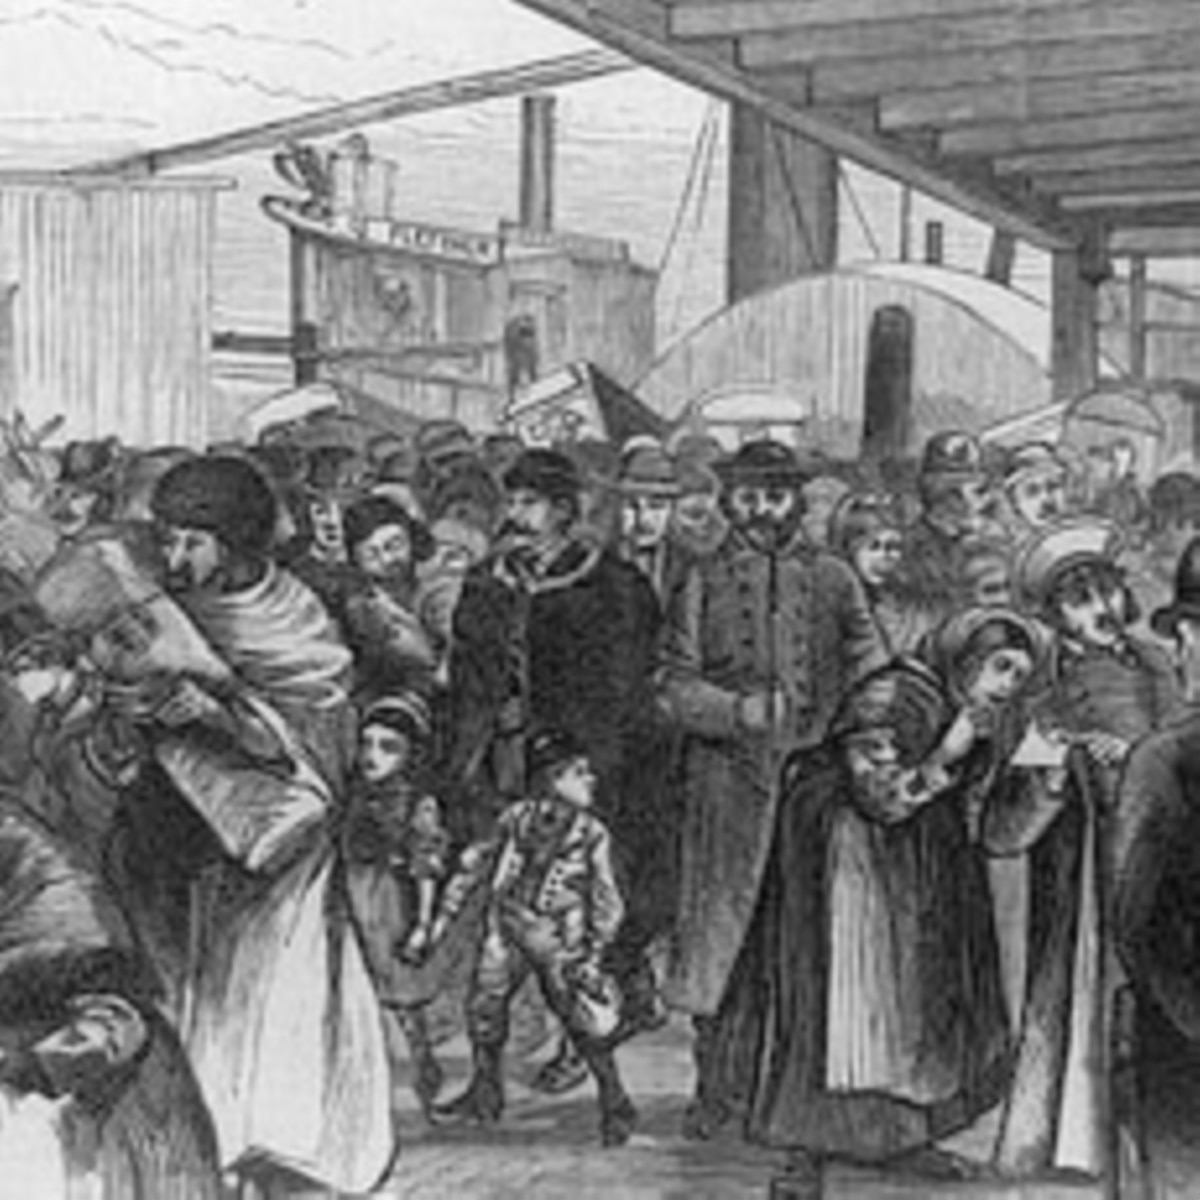 American History: Immigrants From Europe Seek a Better Life in a New